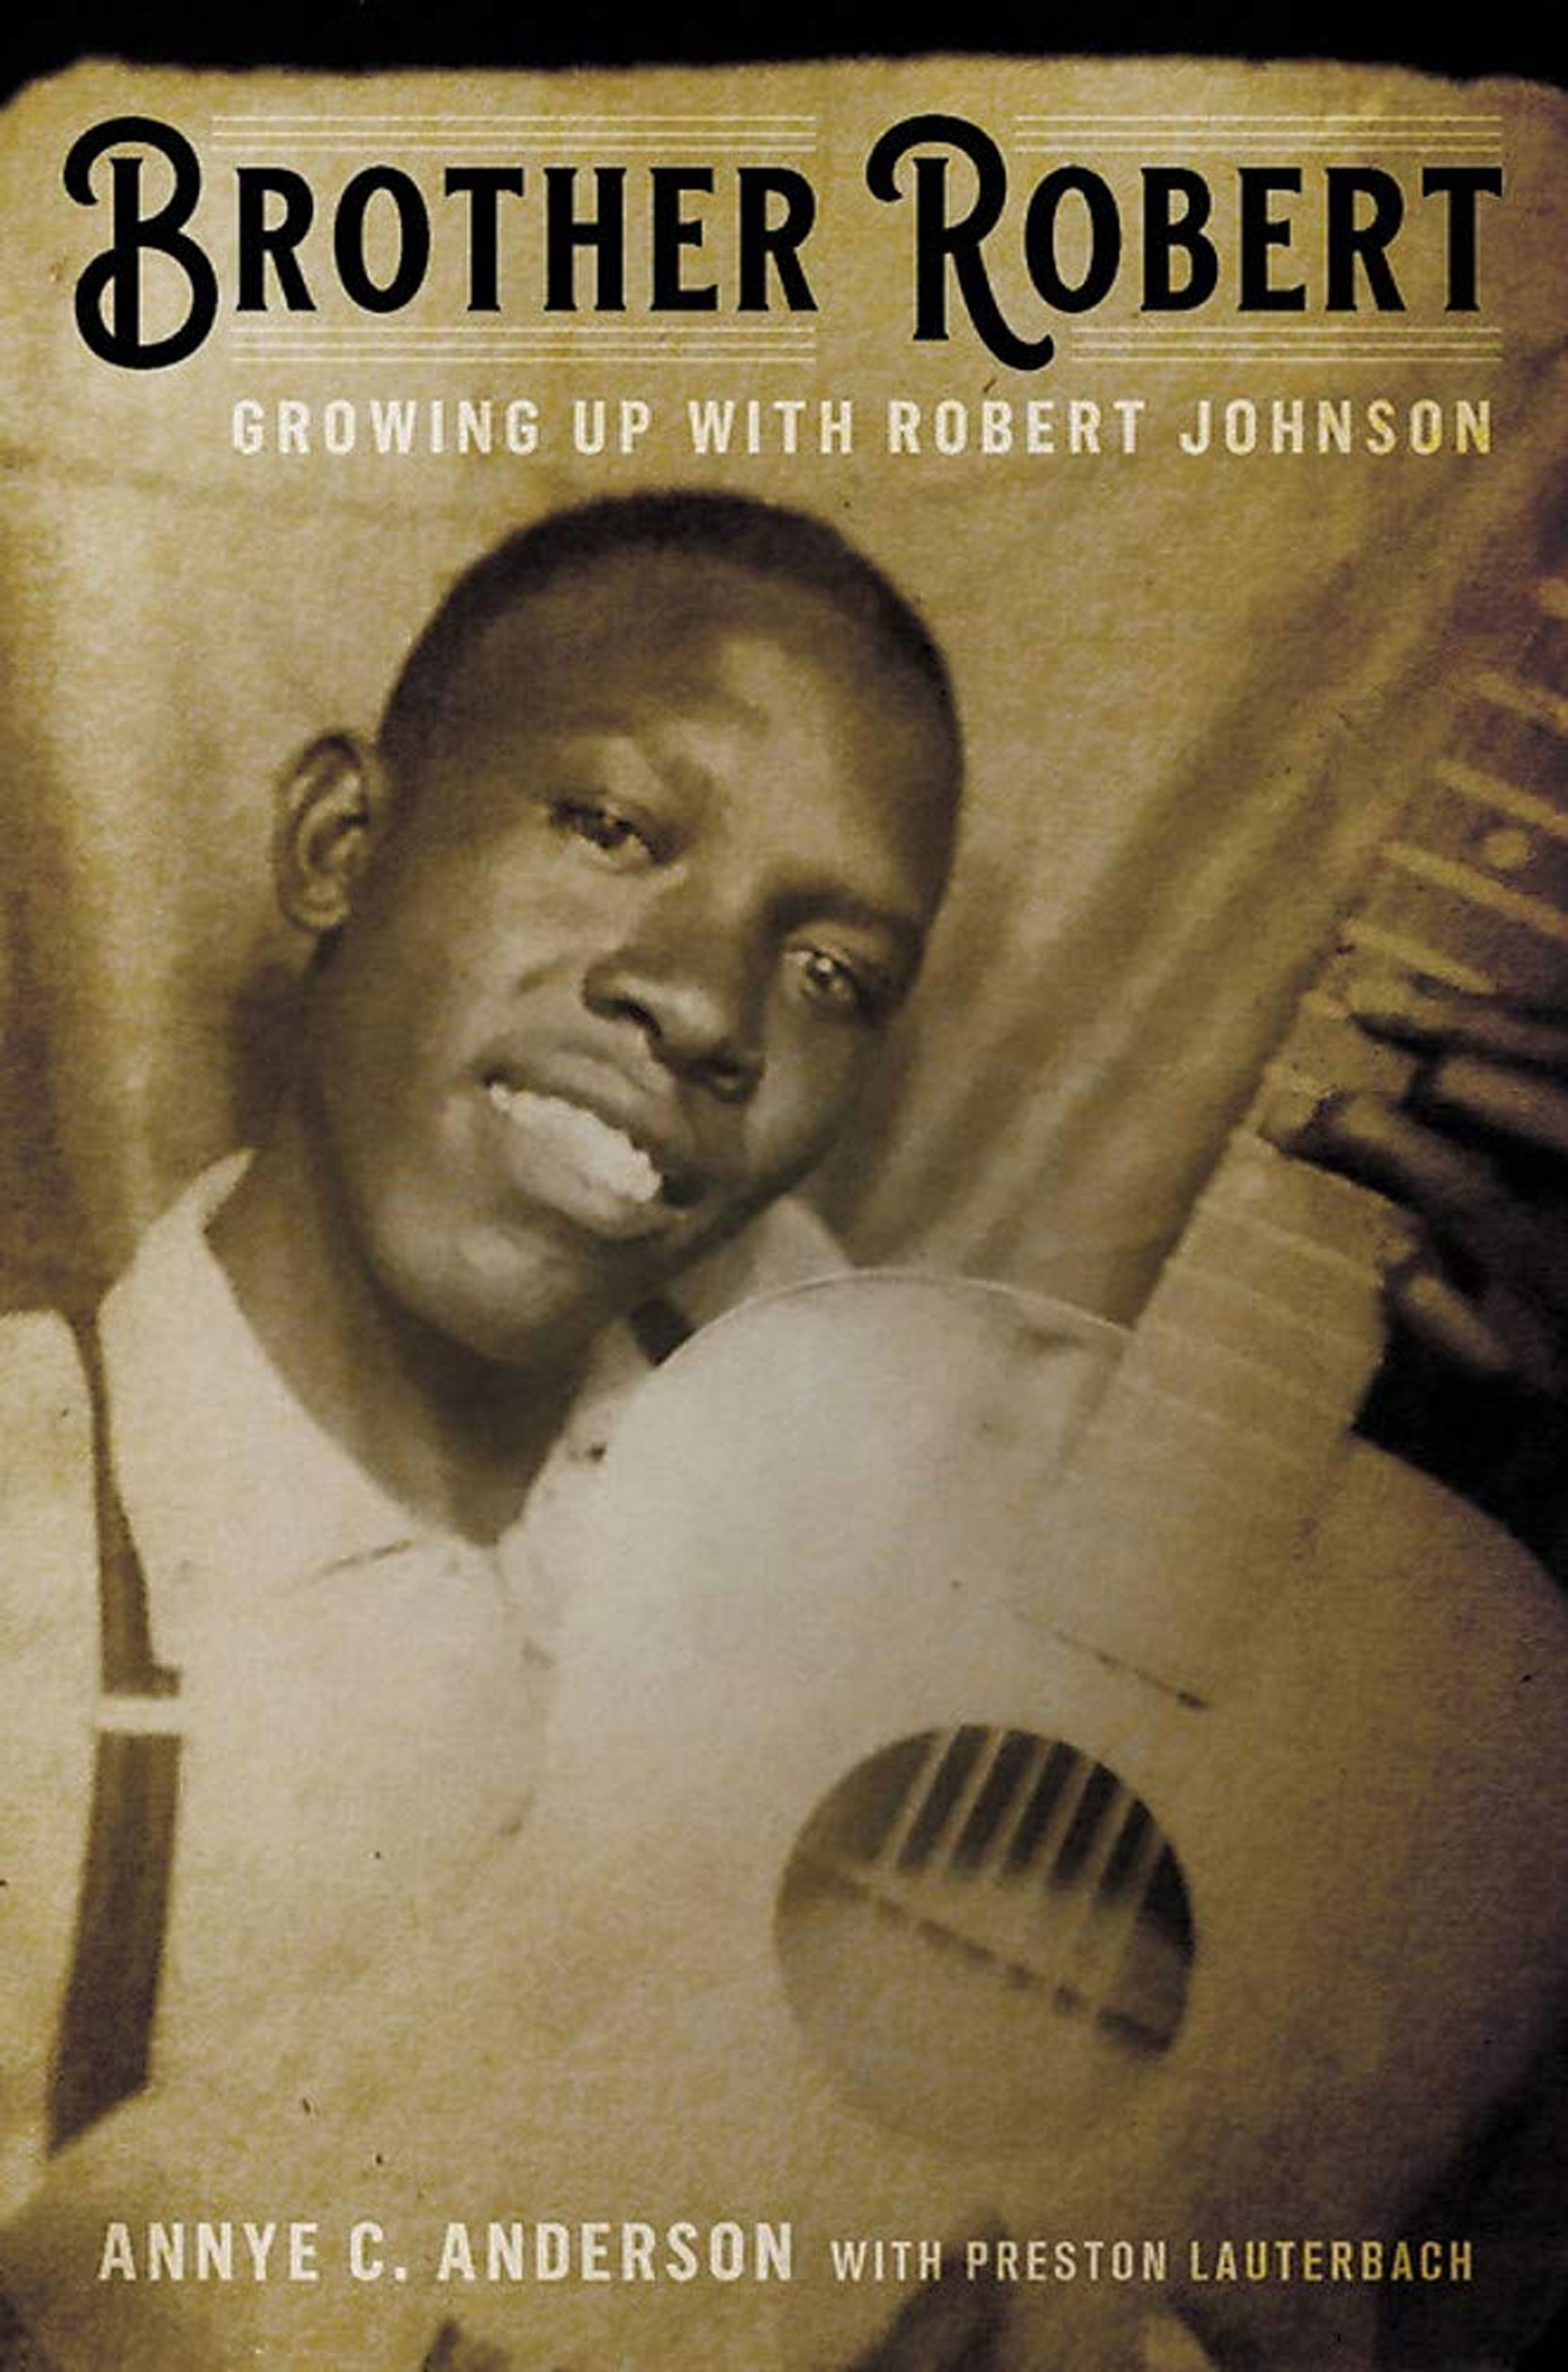 Brother Robert: Growing Up With Robert Johnson, by Annye E. Anderson with Preston Lauderbach, book cover